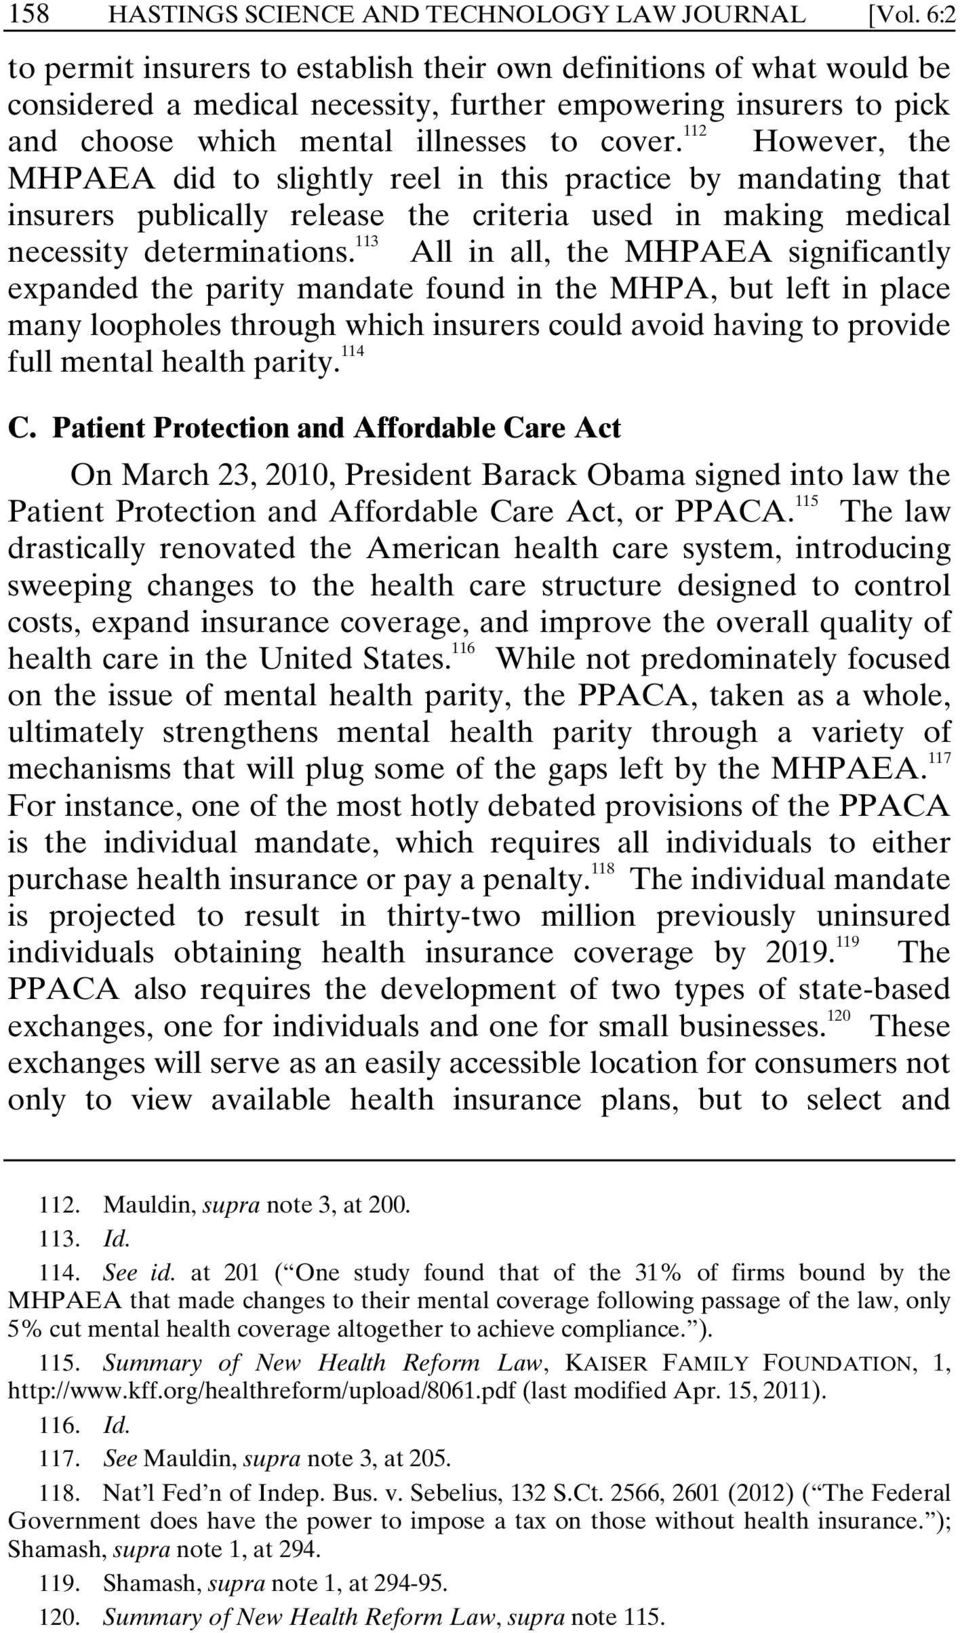 112 However, the MHPAEA did to slightly reel in this practice by mandating that insurers publically release the criteria used in making medical necessity determinations.